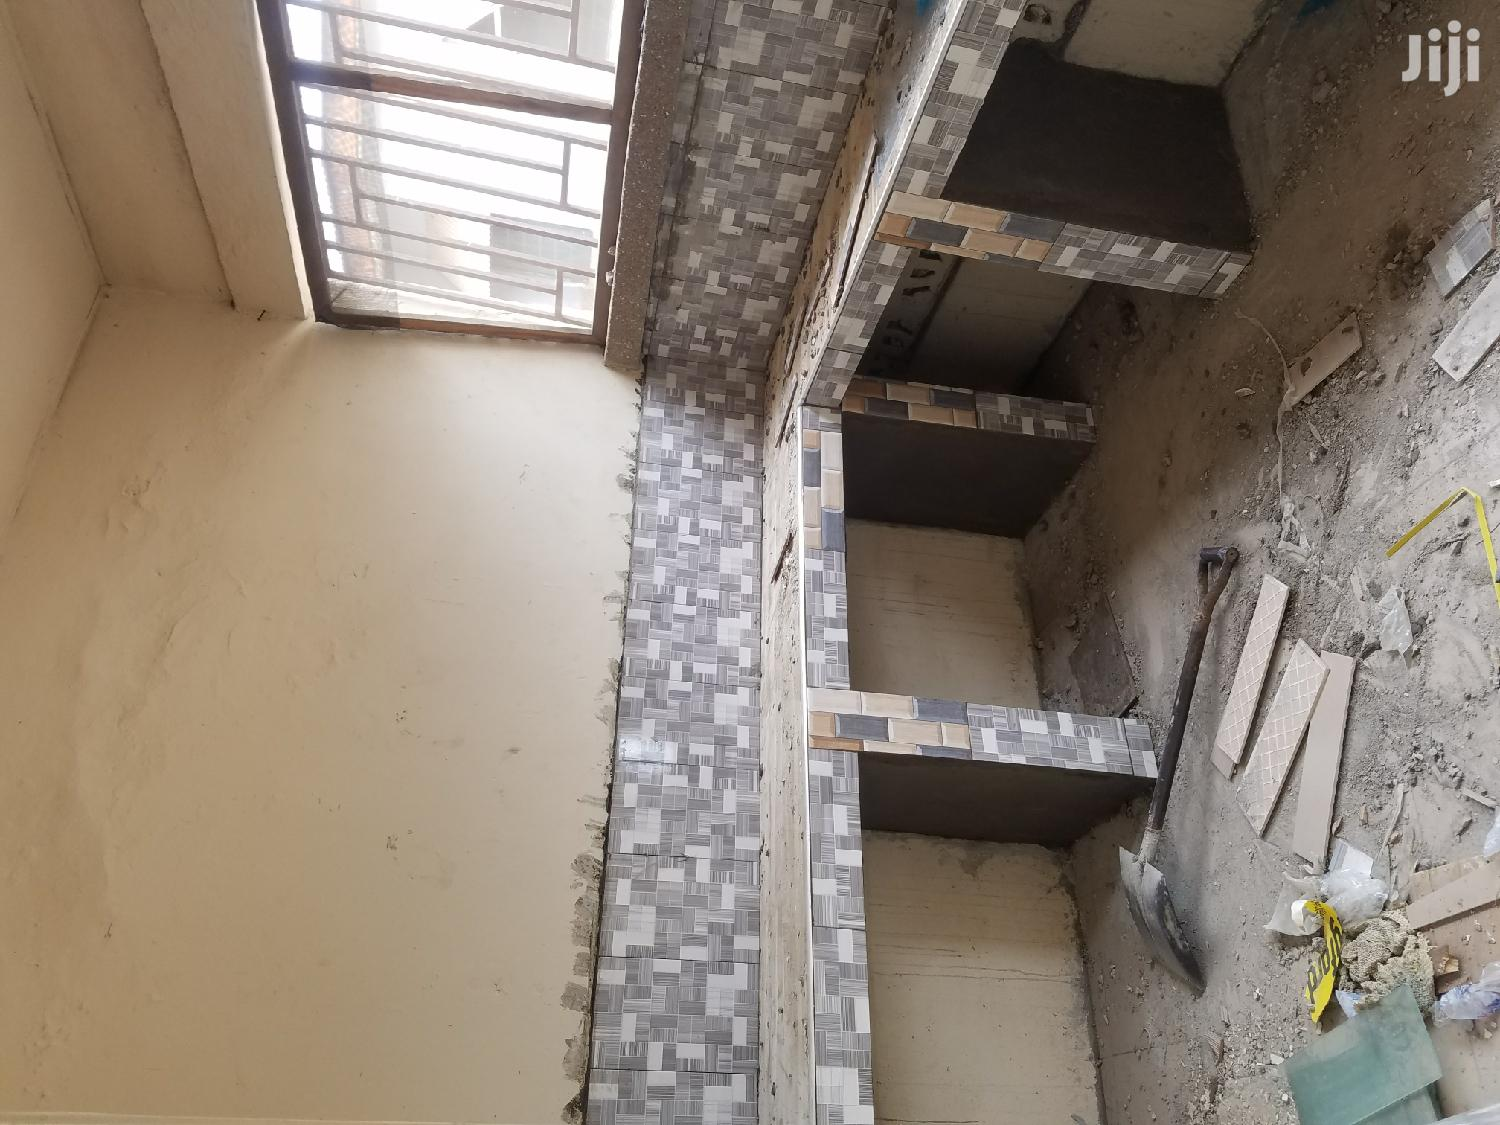 Chamber &Hall Self Contain To Let 1yr | Houses & Apartments For Rent for sale in Ledzokuku-Krowor, Greater Accra, Ghana